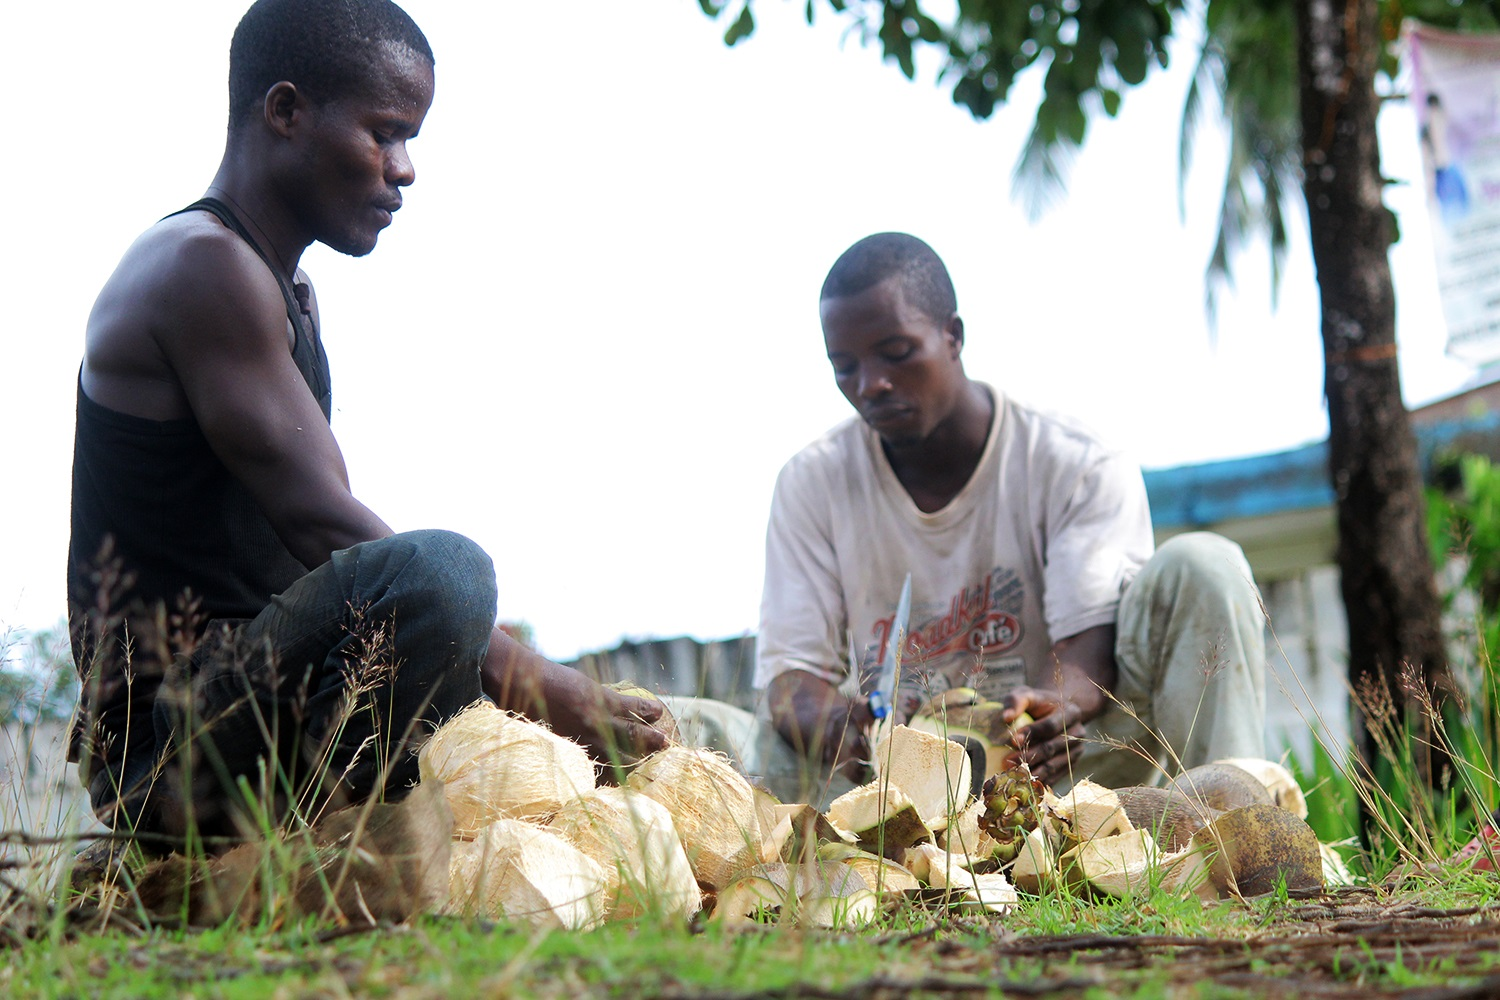 Making-coconut-oil-Liberia2